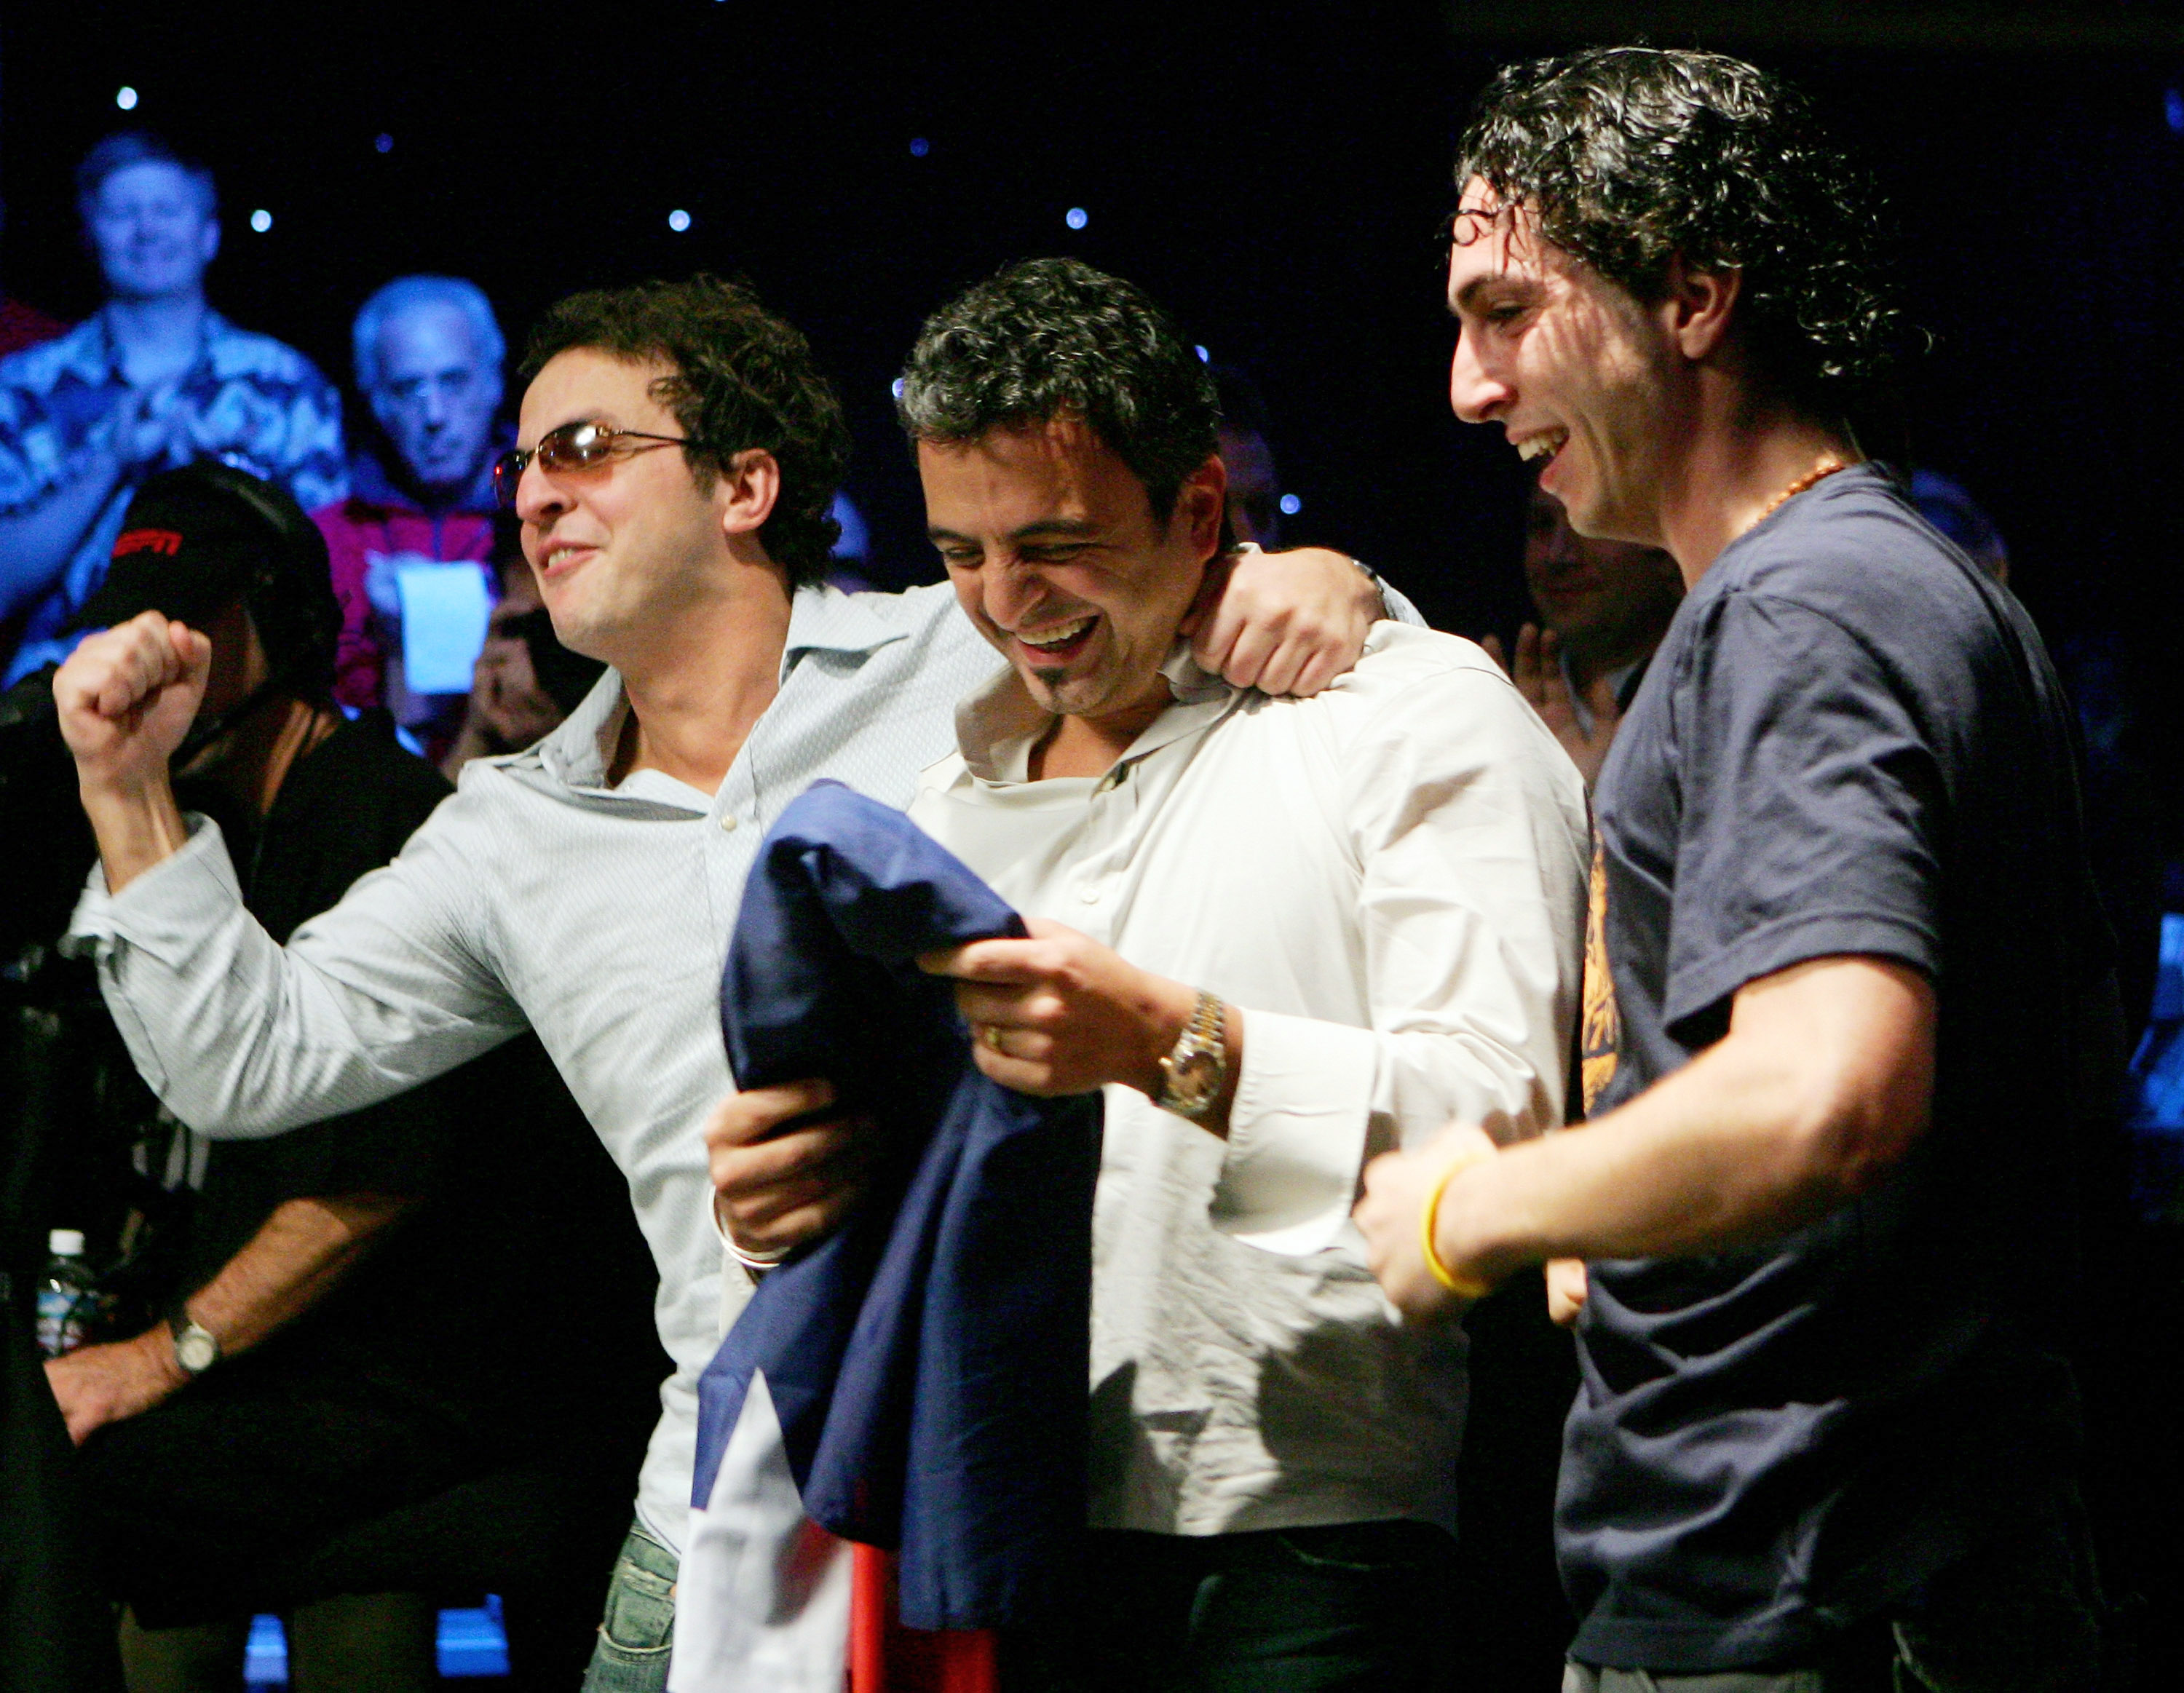 Joe Hachem celebrates his 2005 WSOP Main Event win with his brother Tony and cousin Billy Sukkar. (Image: Getty)